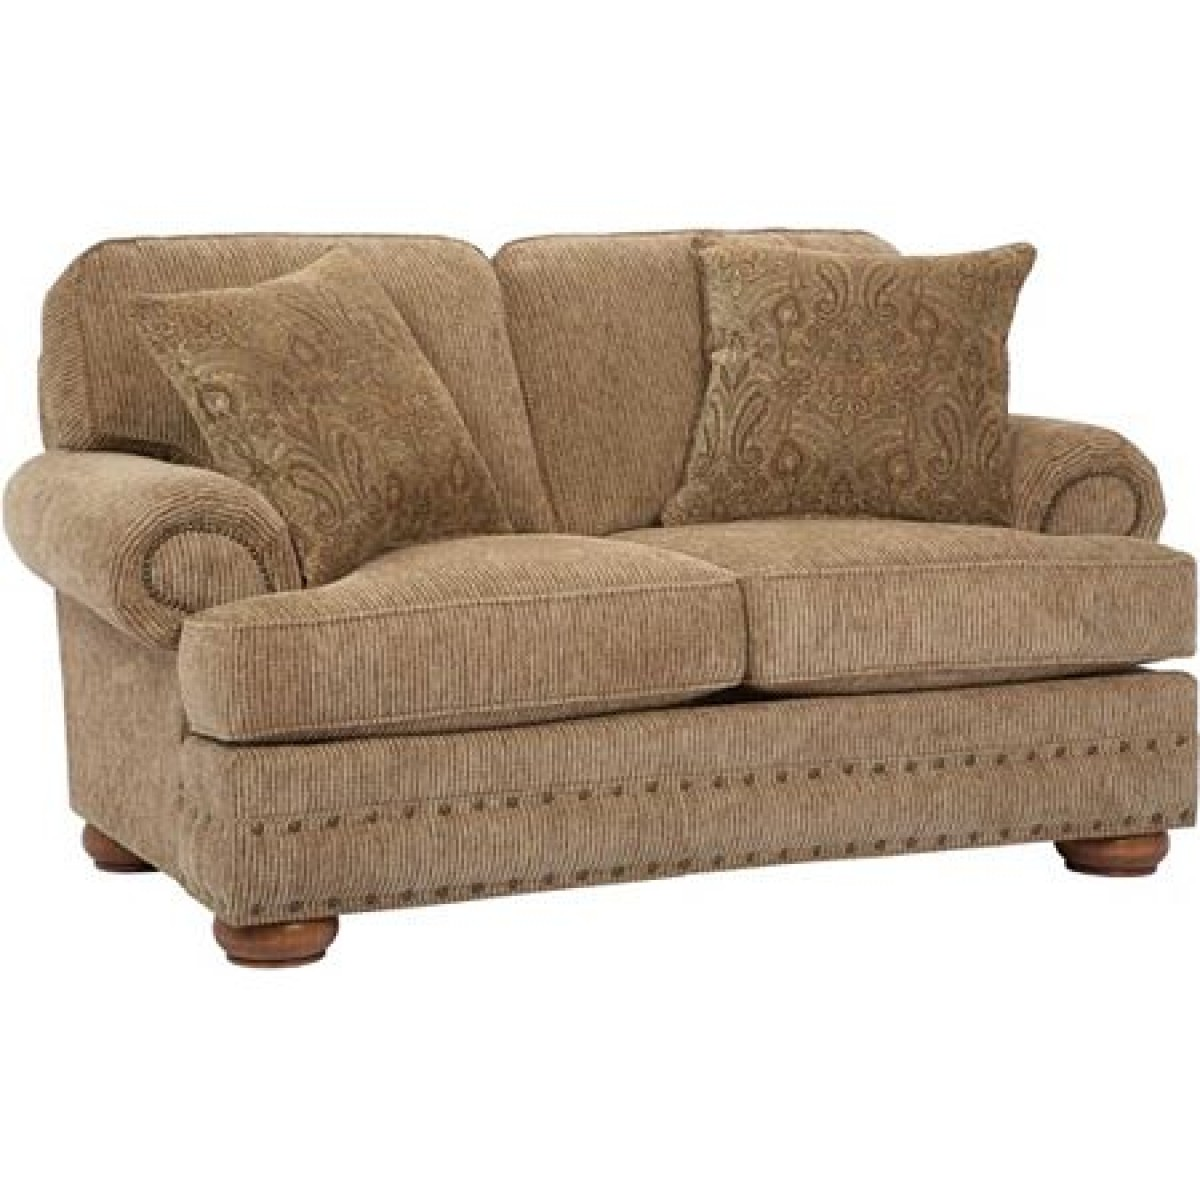 Give Yourself The Best Rest And Relaxation Soft Comfortable Couches And Loveseats Couch